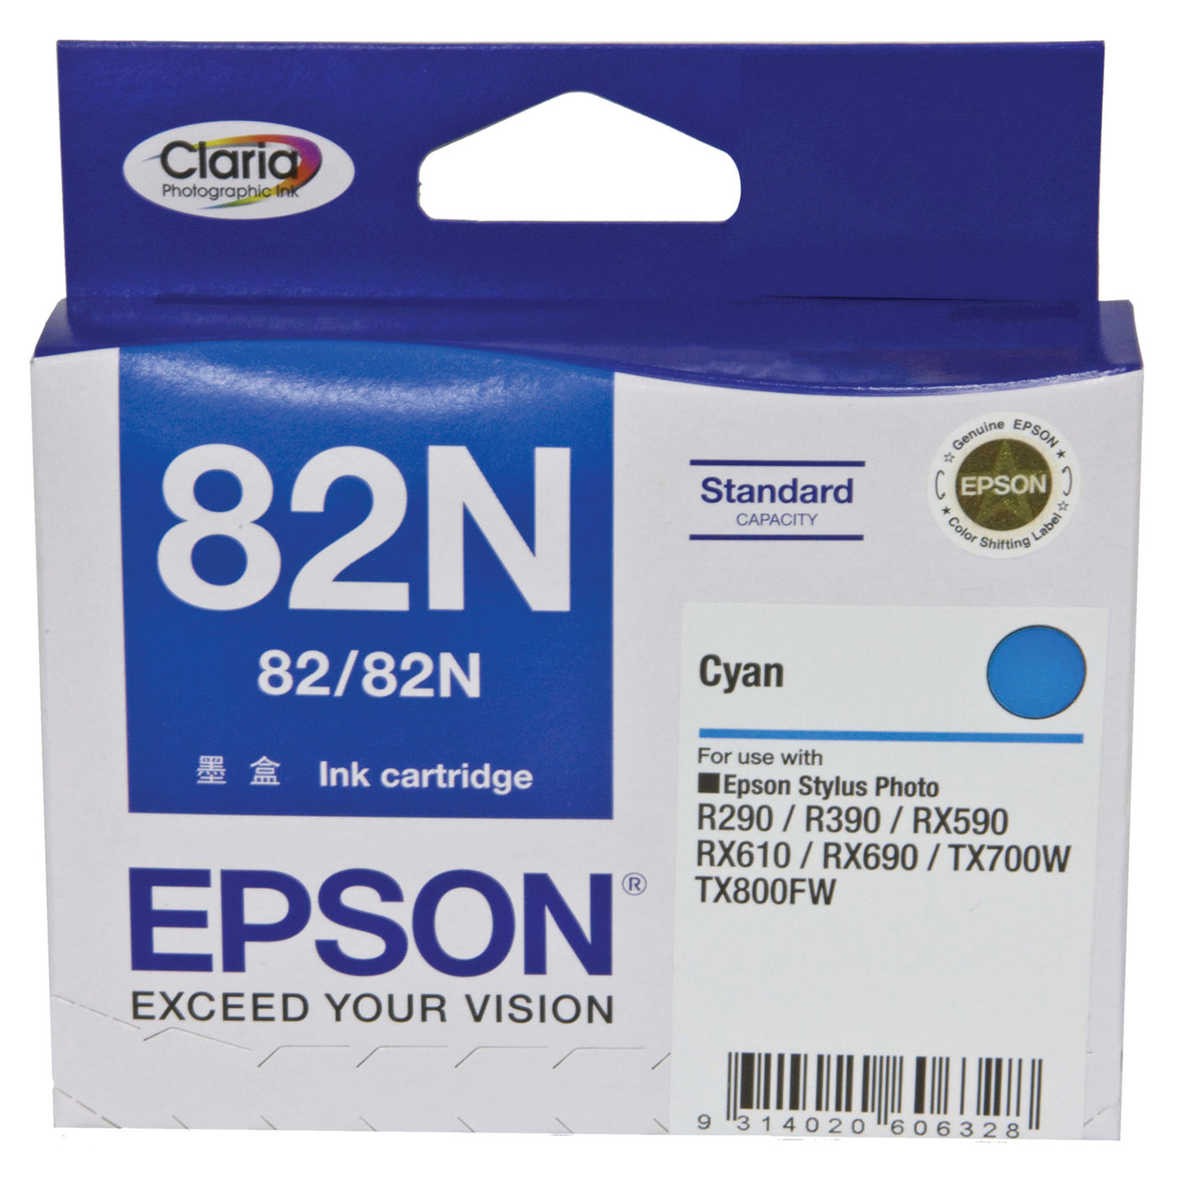 82N Cyan Ink Cartridge. Up to 510 pages.   Genuine EPSON Brand for ARTISAN 635, 725, 730, 835, 837, R290, R390, RX590, RX610, RX690, T50, TX650, TX700W, TX710W, TX800FW, TX810FW